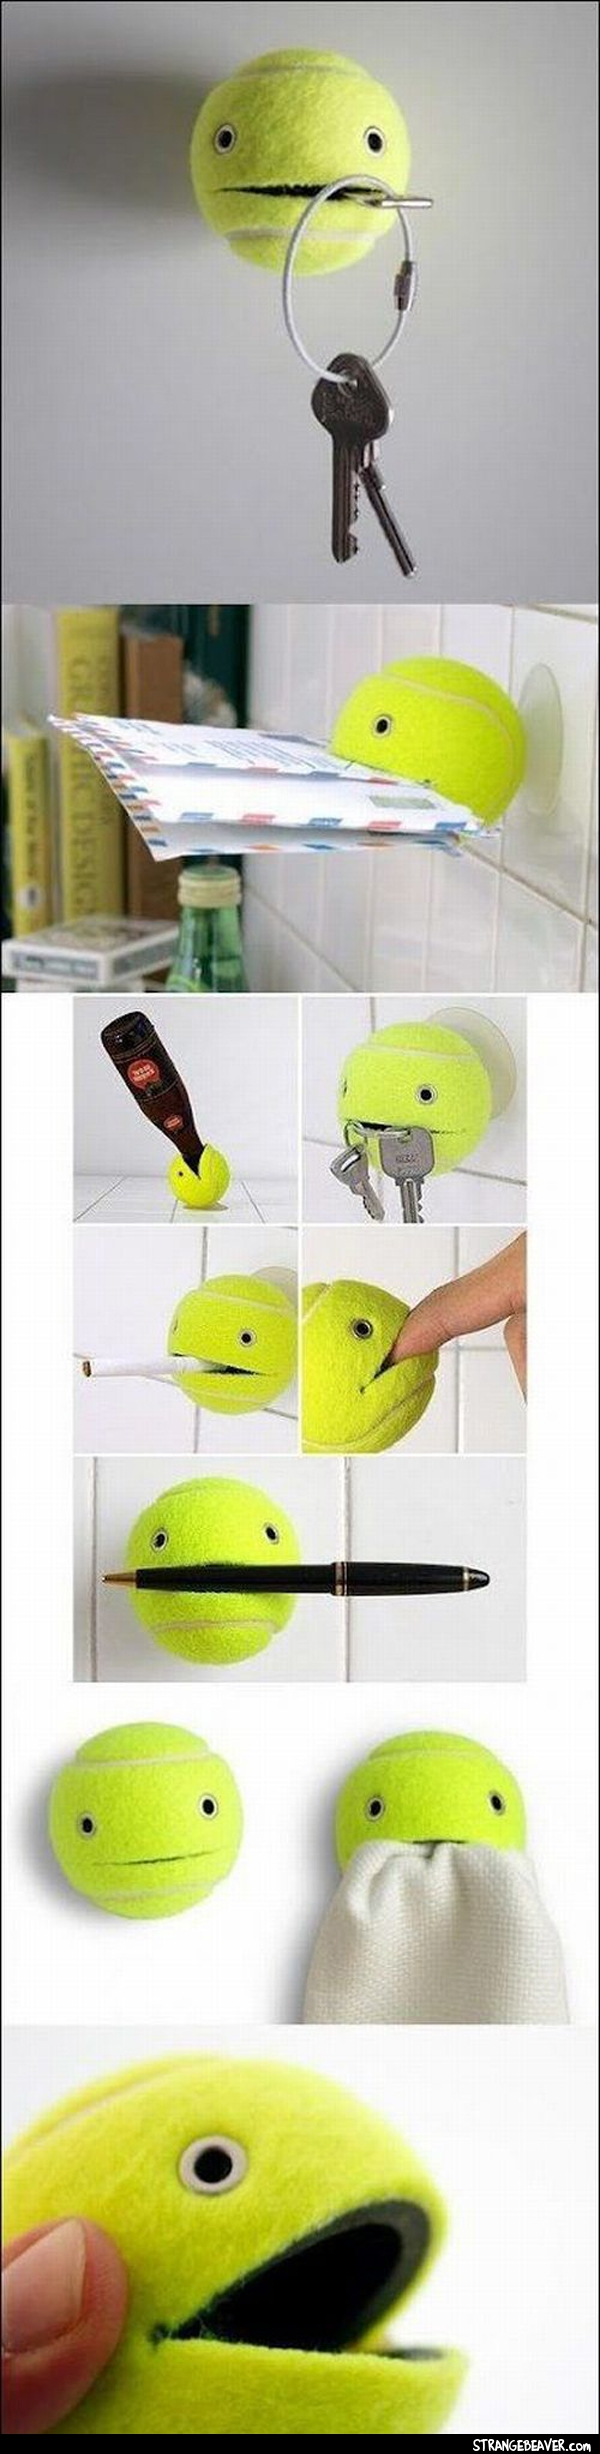 cool tennis ball hanger